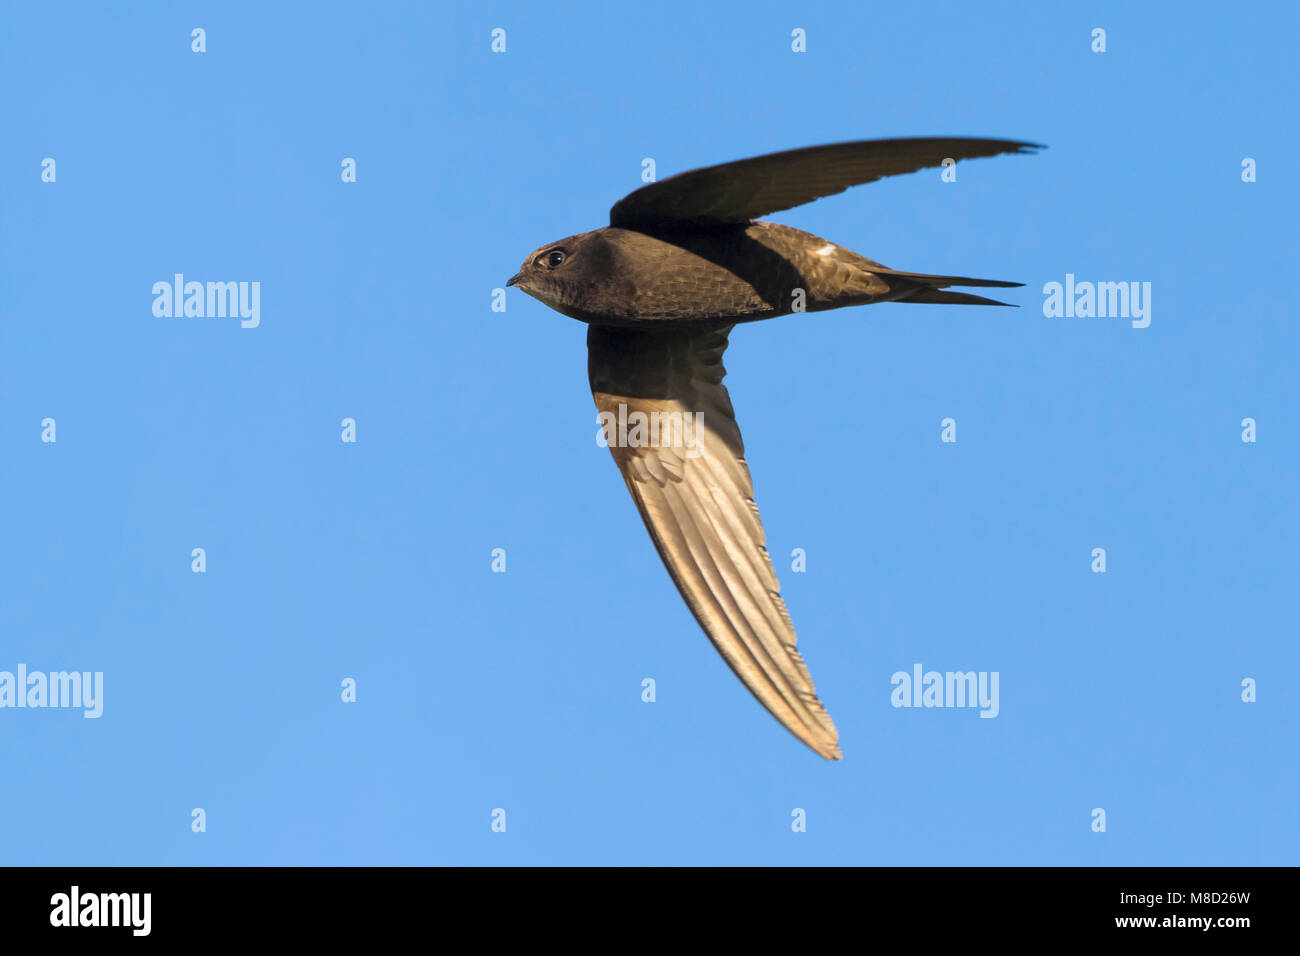 Gierzwaluw; Common Swift - Stock Image